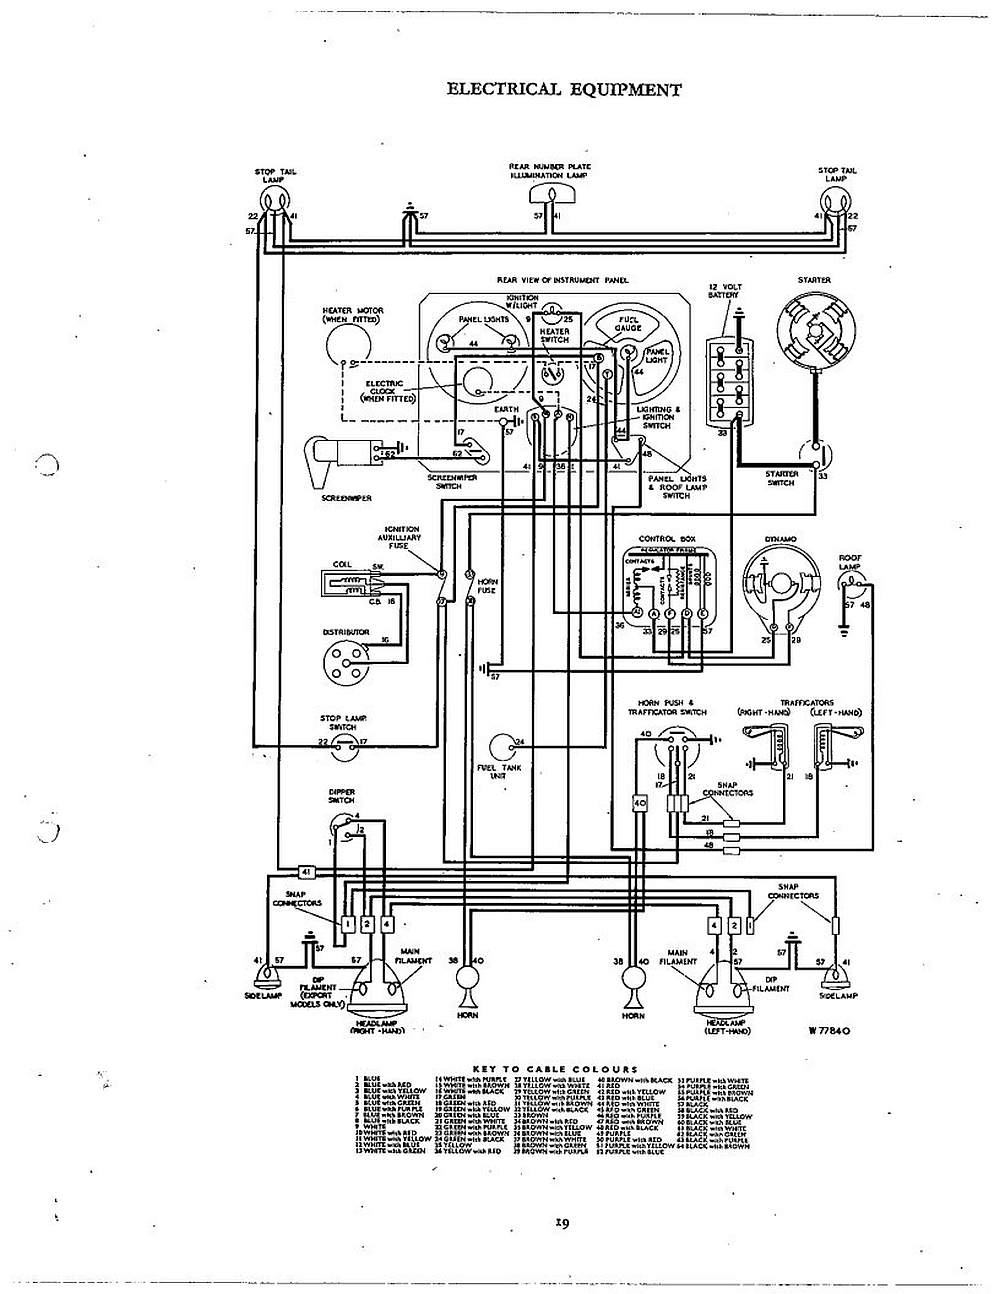 1963 Triumph Bonneville Wiring Diagram Electrical Diagrams Bsa 1969 Enthusiast U2022 Rh Rasalibre Co Tr6